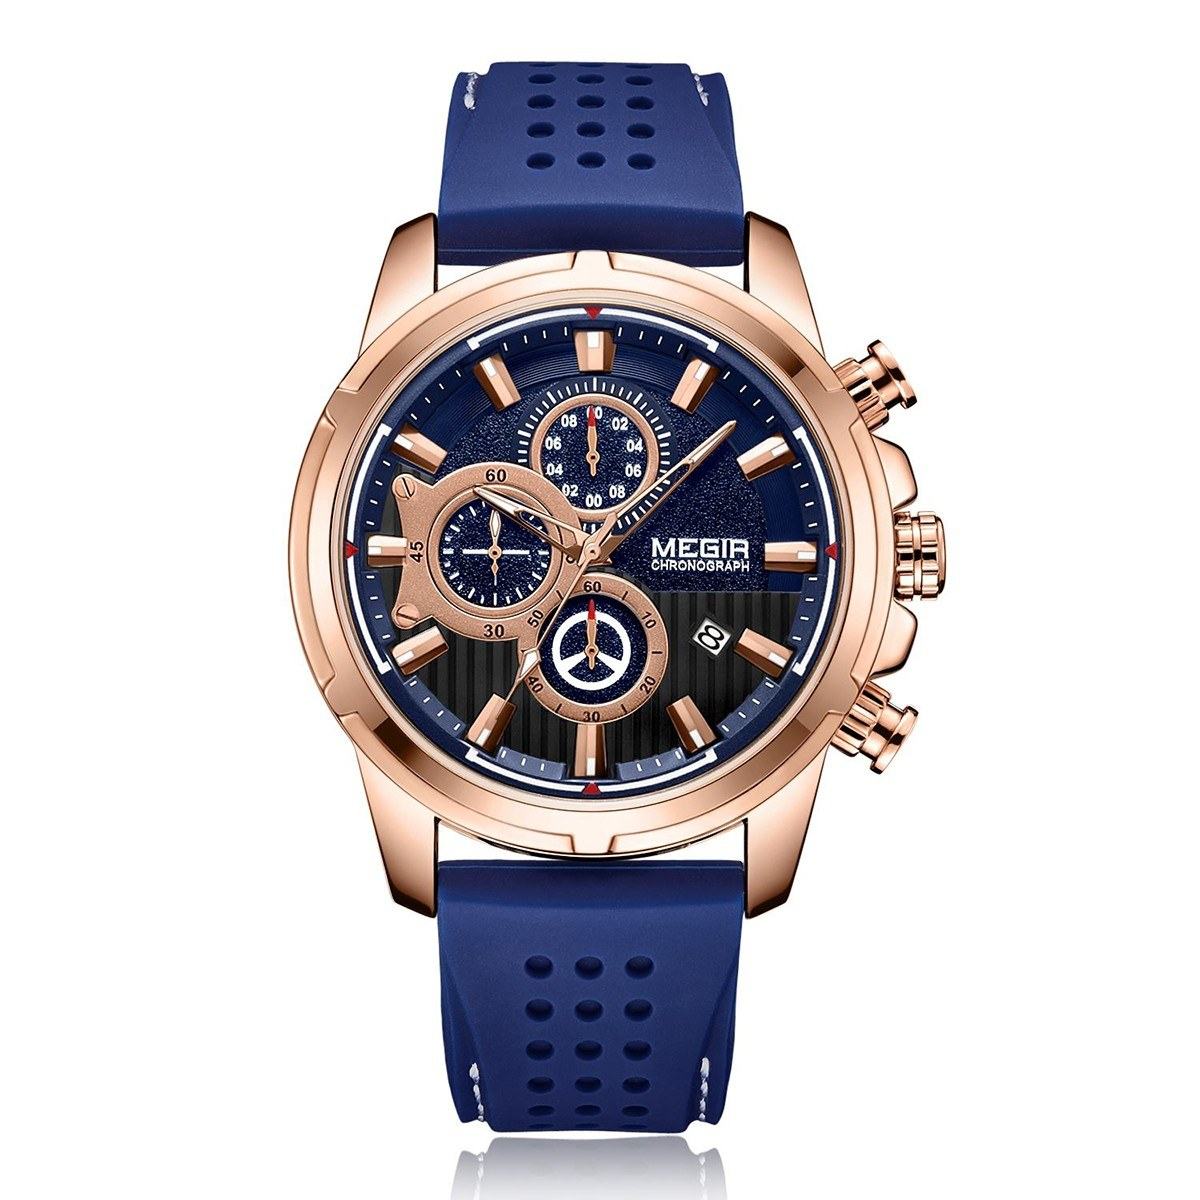 megir 2101 Business Quartz Sports Men Watch 3ATM Waterproof Big Dial Large Face Wrist Watch Microsecond Second Minute Chronograph Sub-dials Calendar Clock for Men with Silicone Strap Band